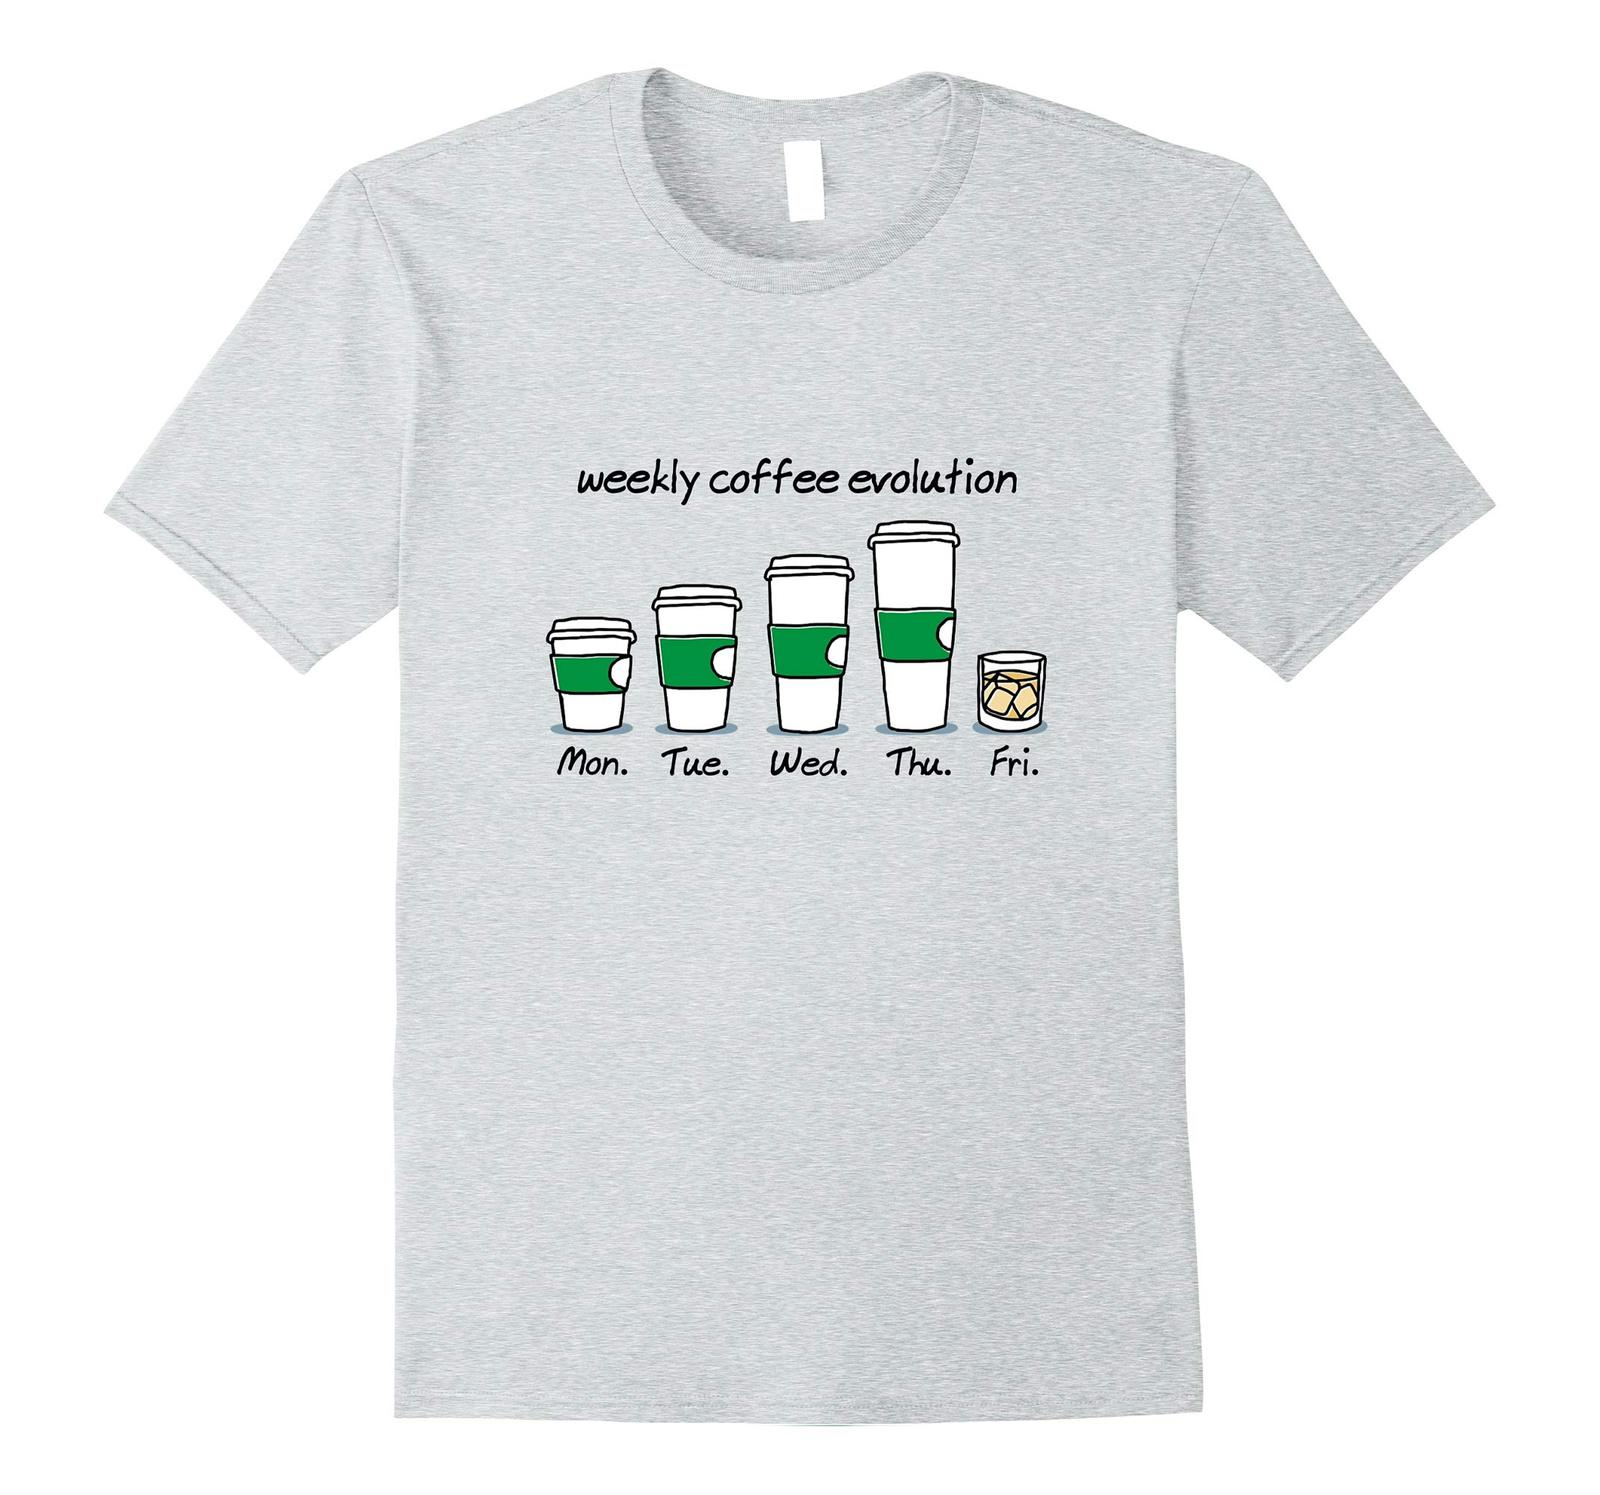 New Shirts - Weekly Coffee Evolution Drink T-Shirt Men image 3